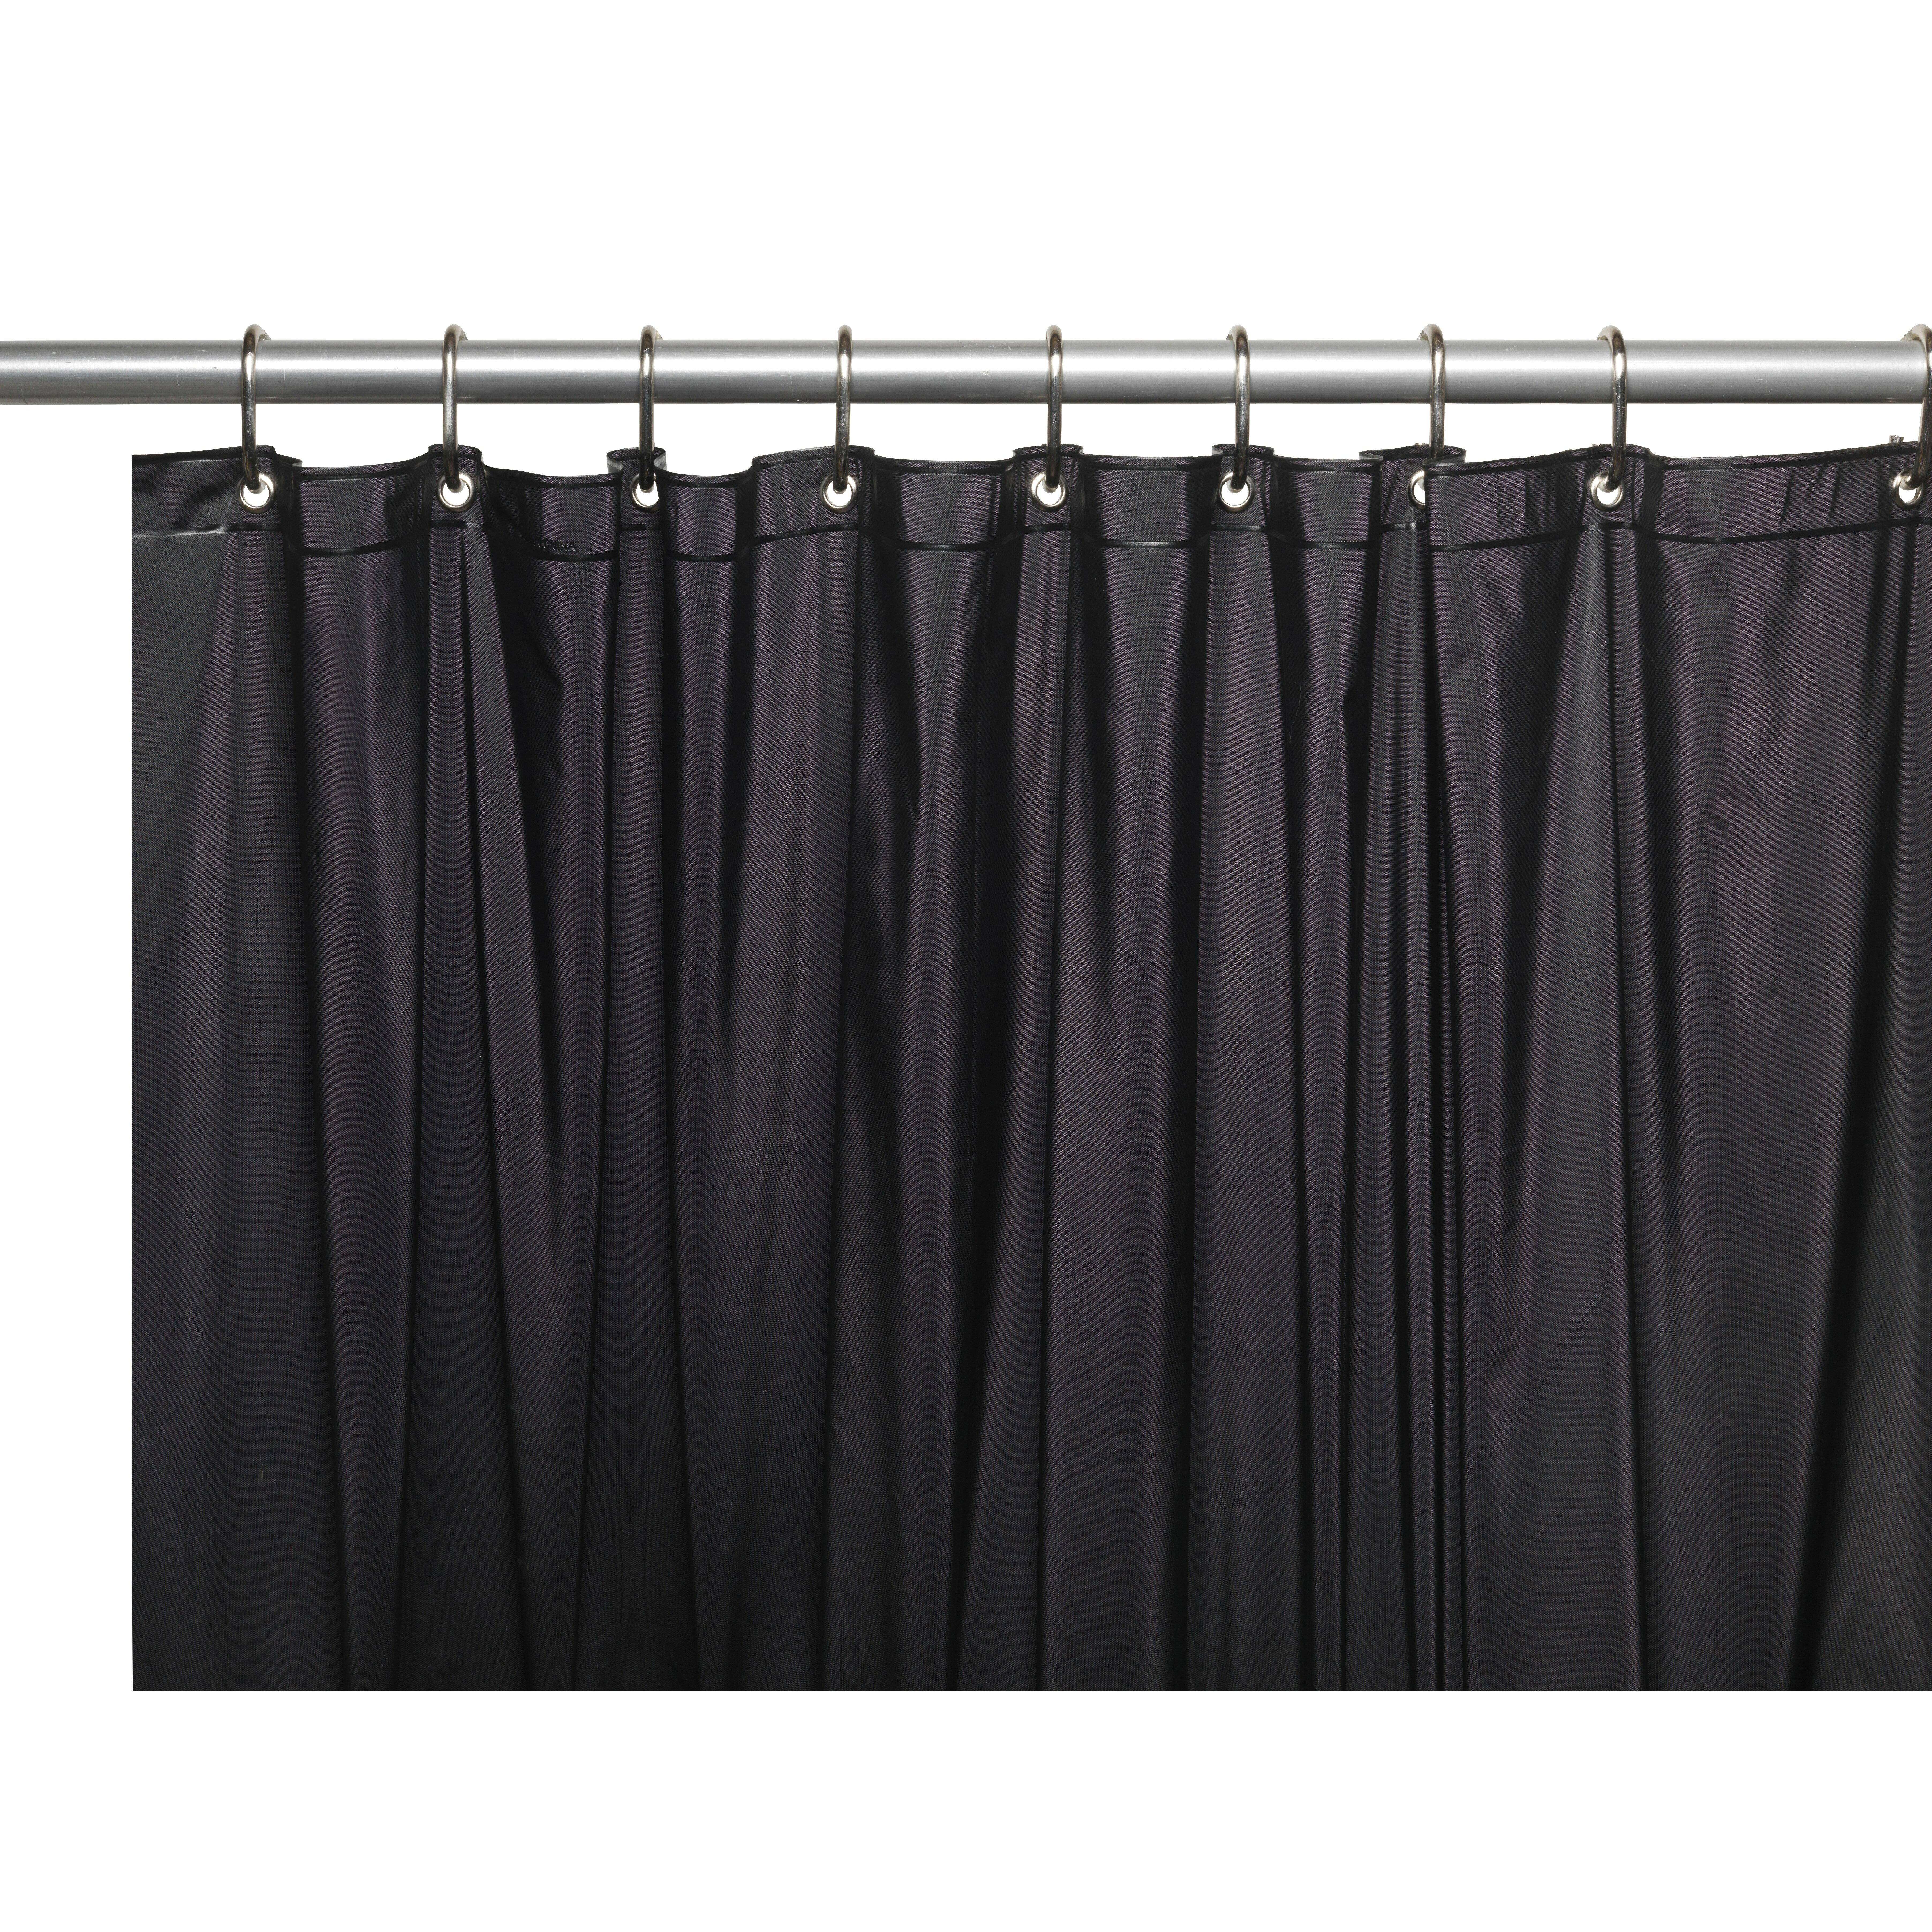 Polka dot shower curtain black and white - Red Polka Dot Shower Curtain Black And Gold Shower Curtain Shower Curtain Liner